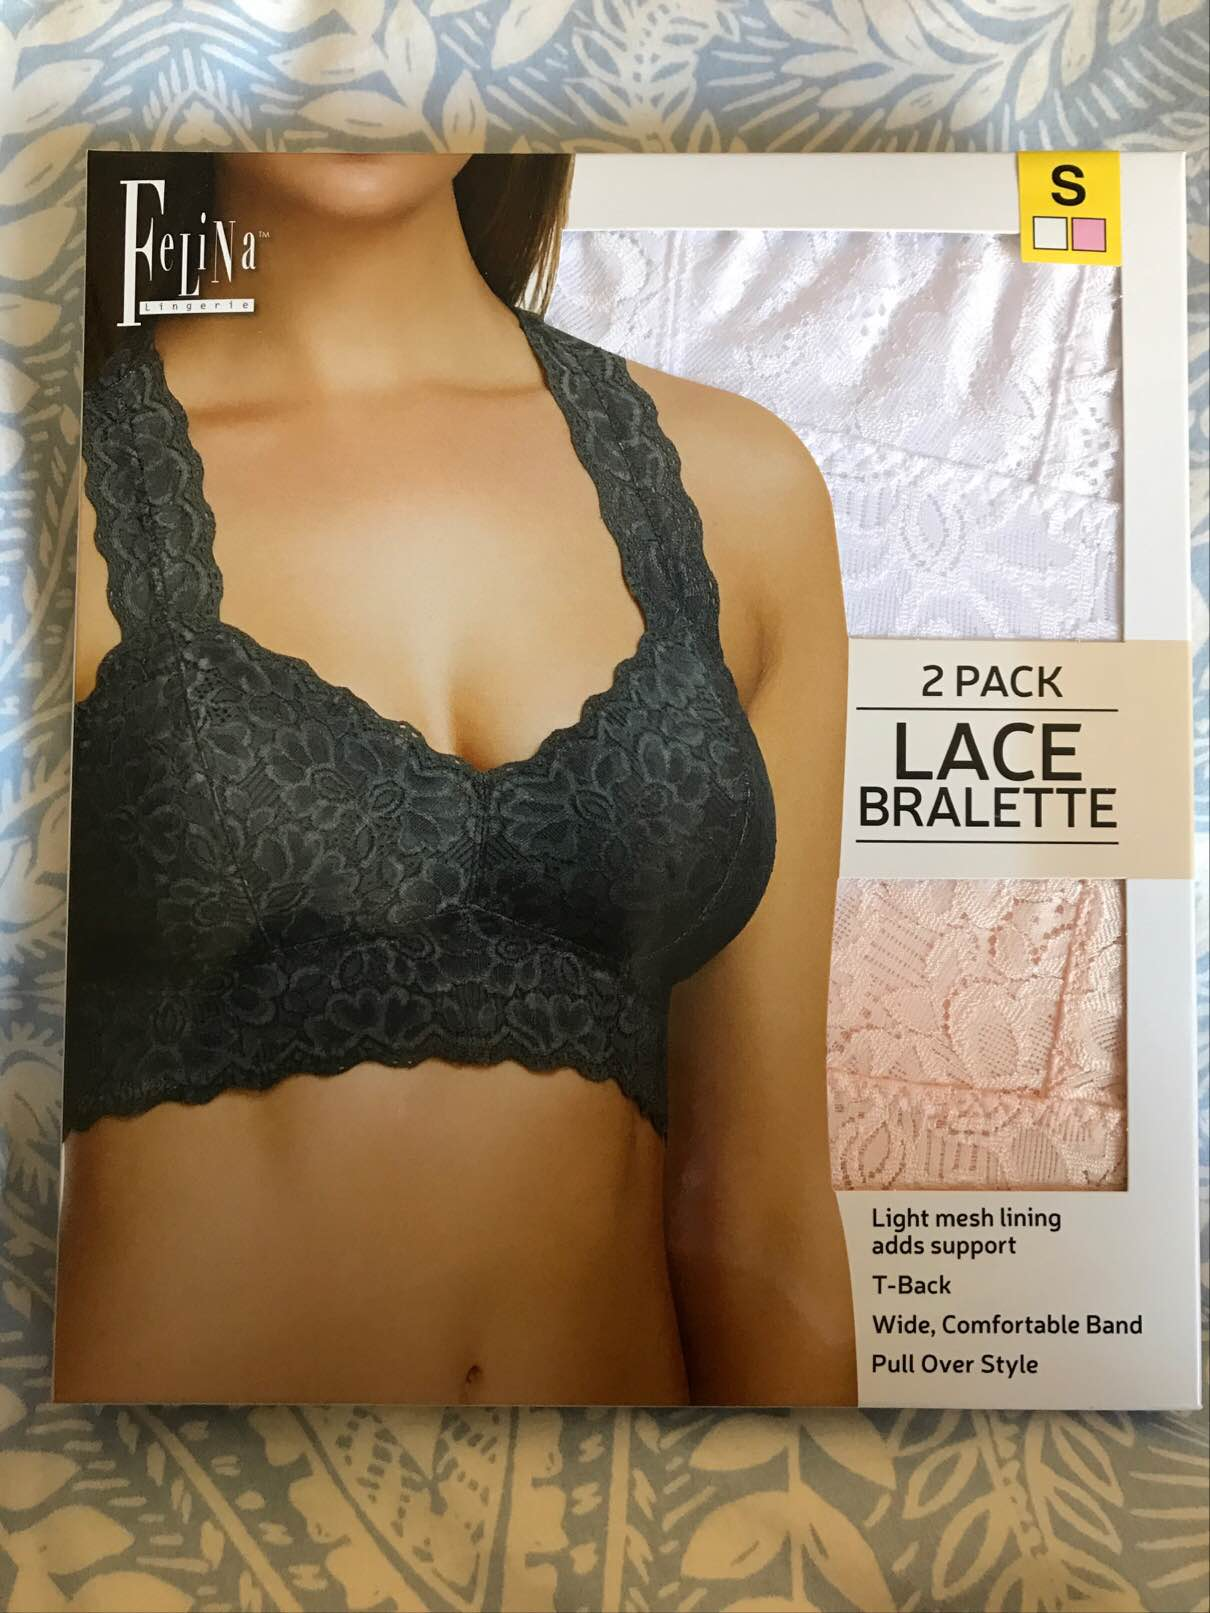 6b06b3ee81 Bralette at Costco 2  12.99 - The Krazy Coupon Lady